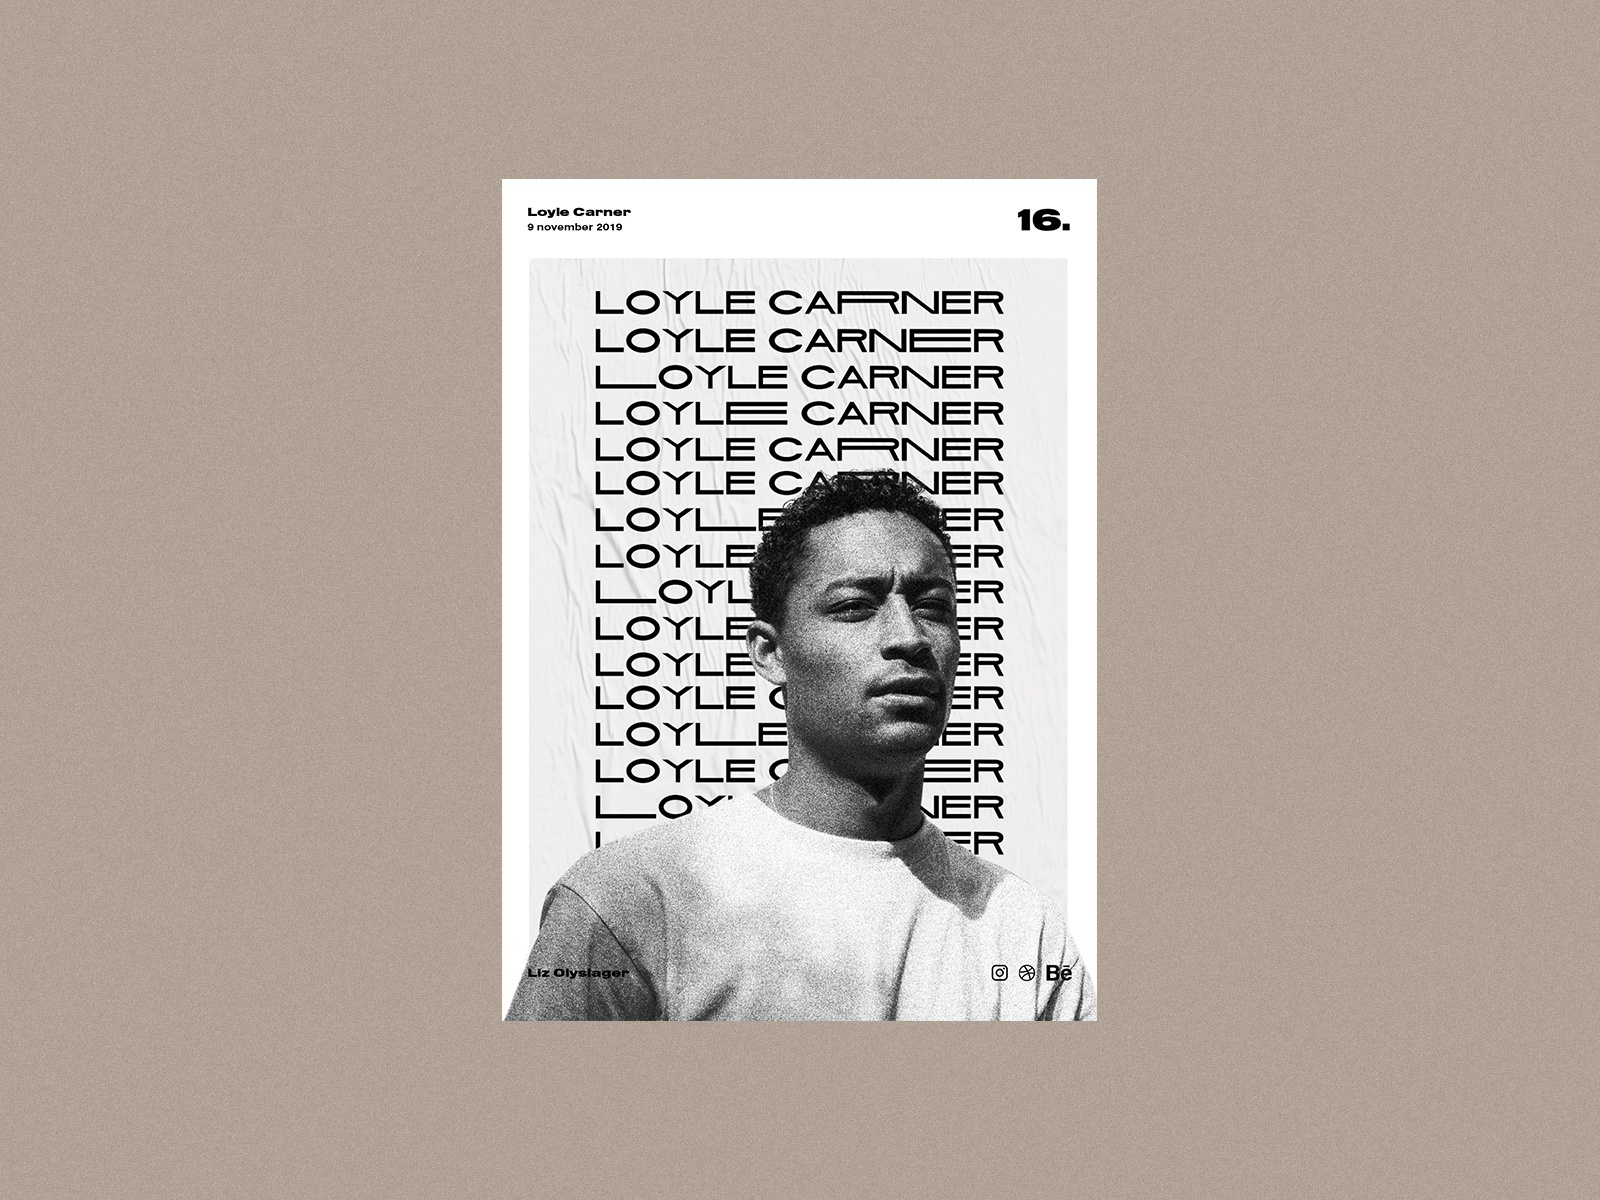 Poster day 16 - Loyle Carner